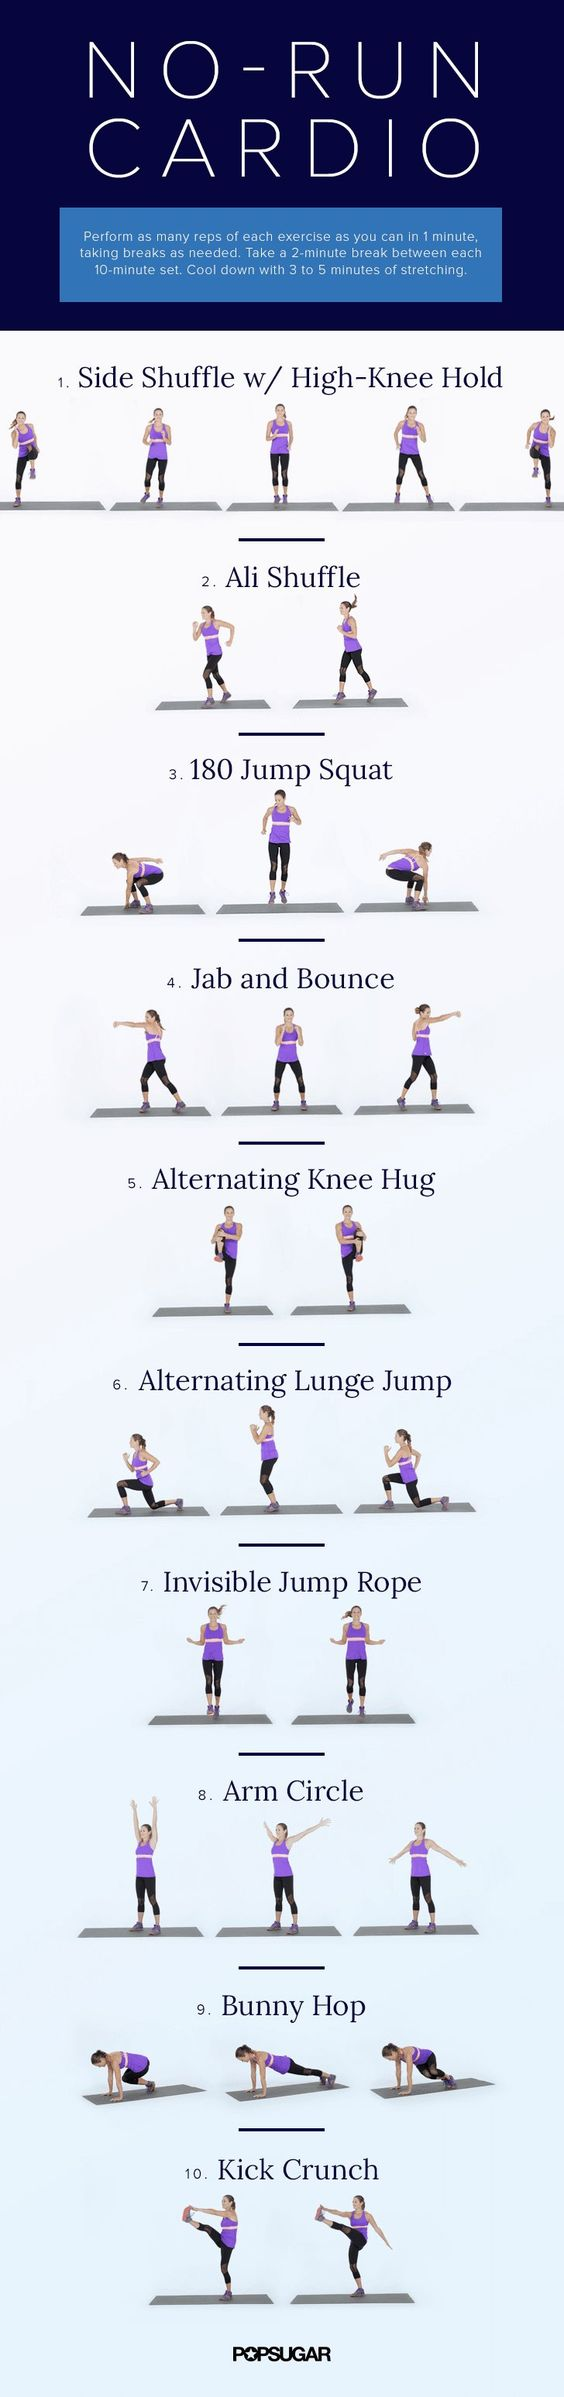 5 At-Home Cardio Workouts —No Running Required